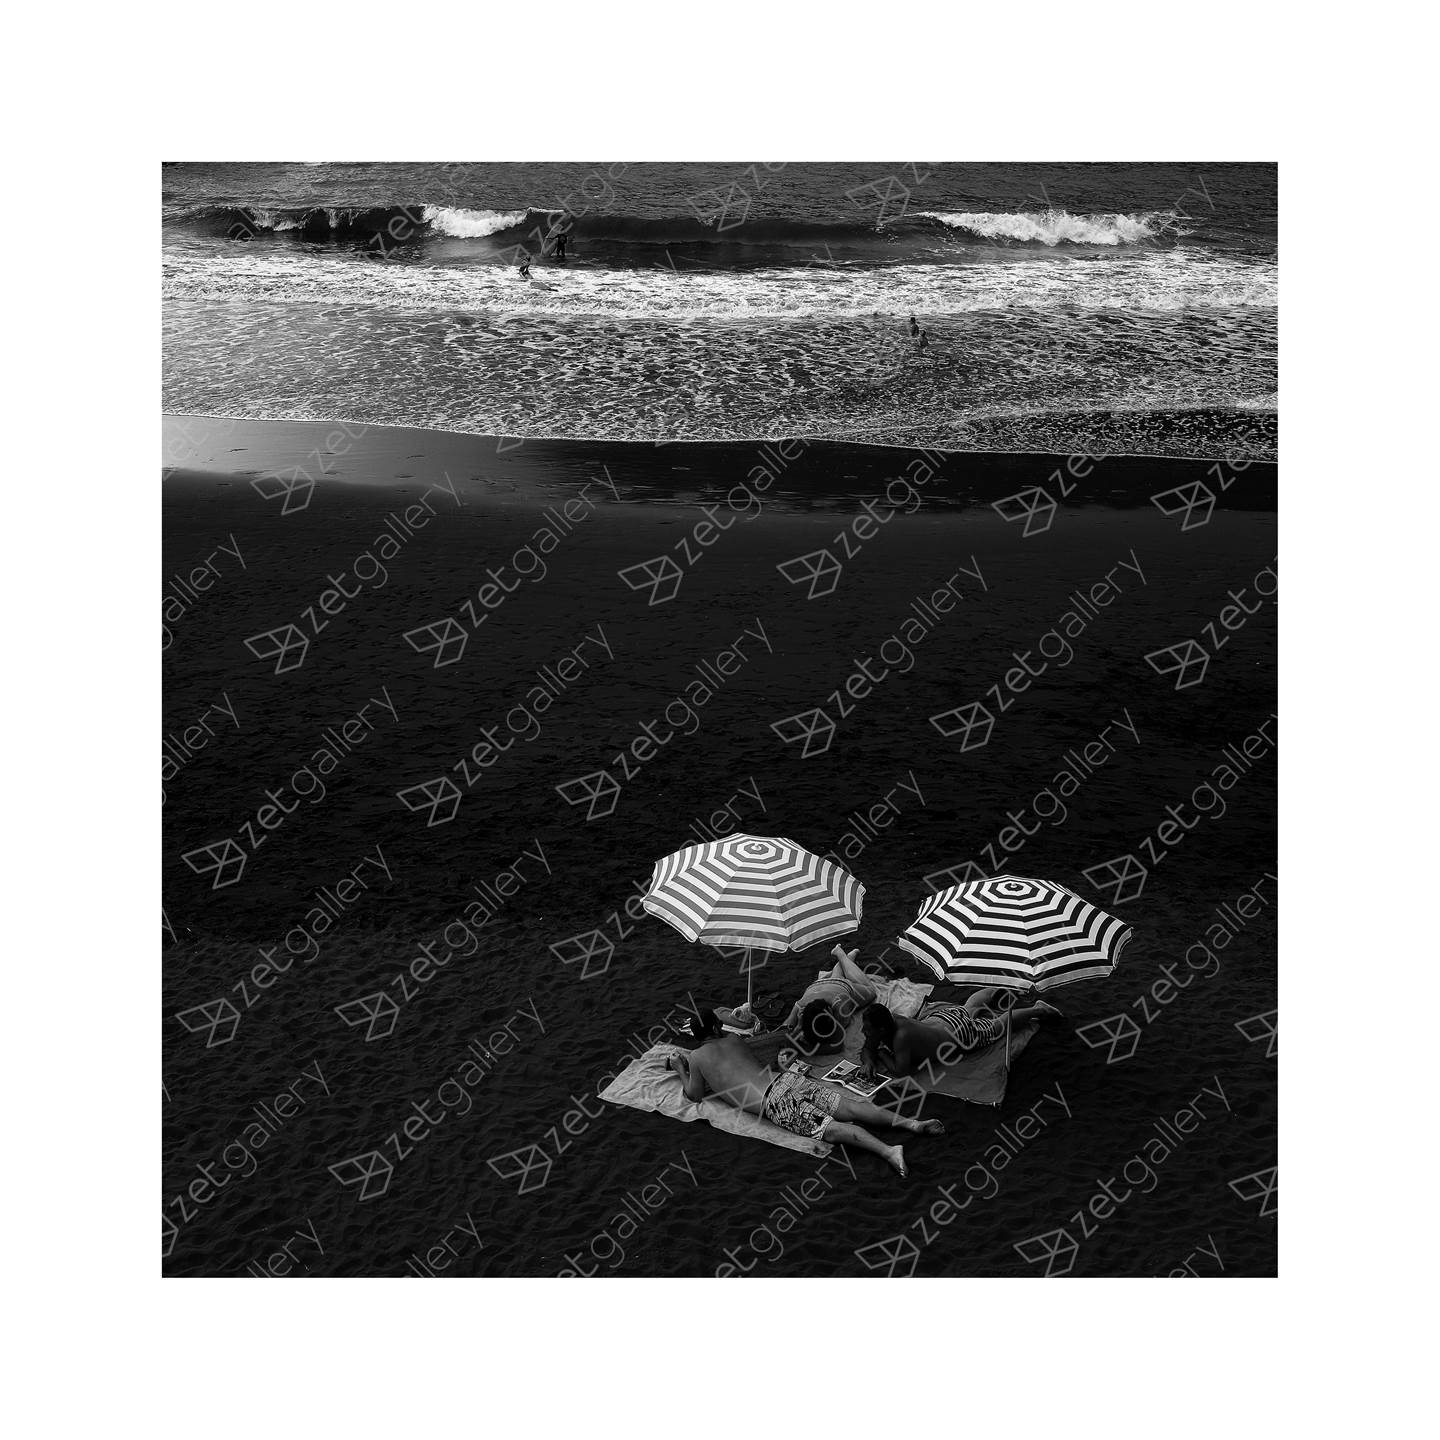 Sunbathers, original B&W Digital Photography by Filipe Bianchi